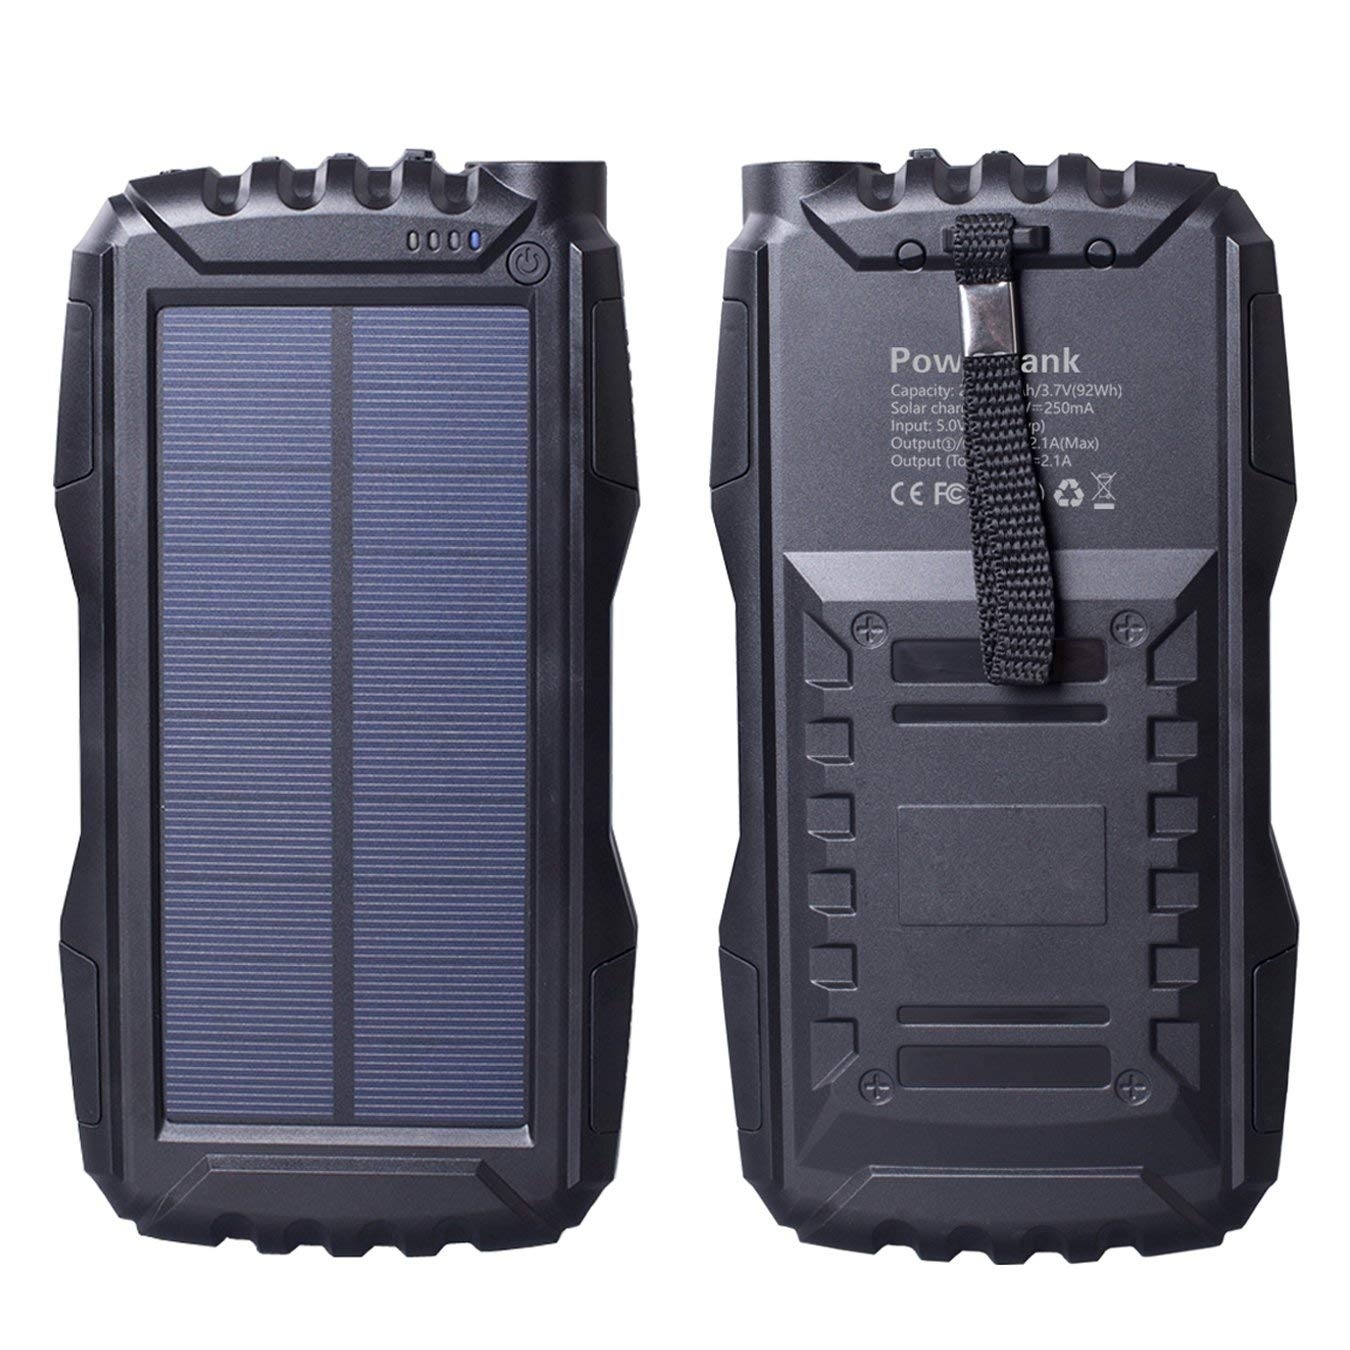 Solar Charger, Friengood Portable 25000mAh Solar Power Bank, Waterproof Solar External Battery Pack with Dual USB Ports and Flashlight for iPhone, iPad, Samsung, Android Phones and More (Black)